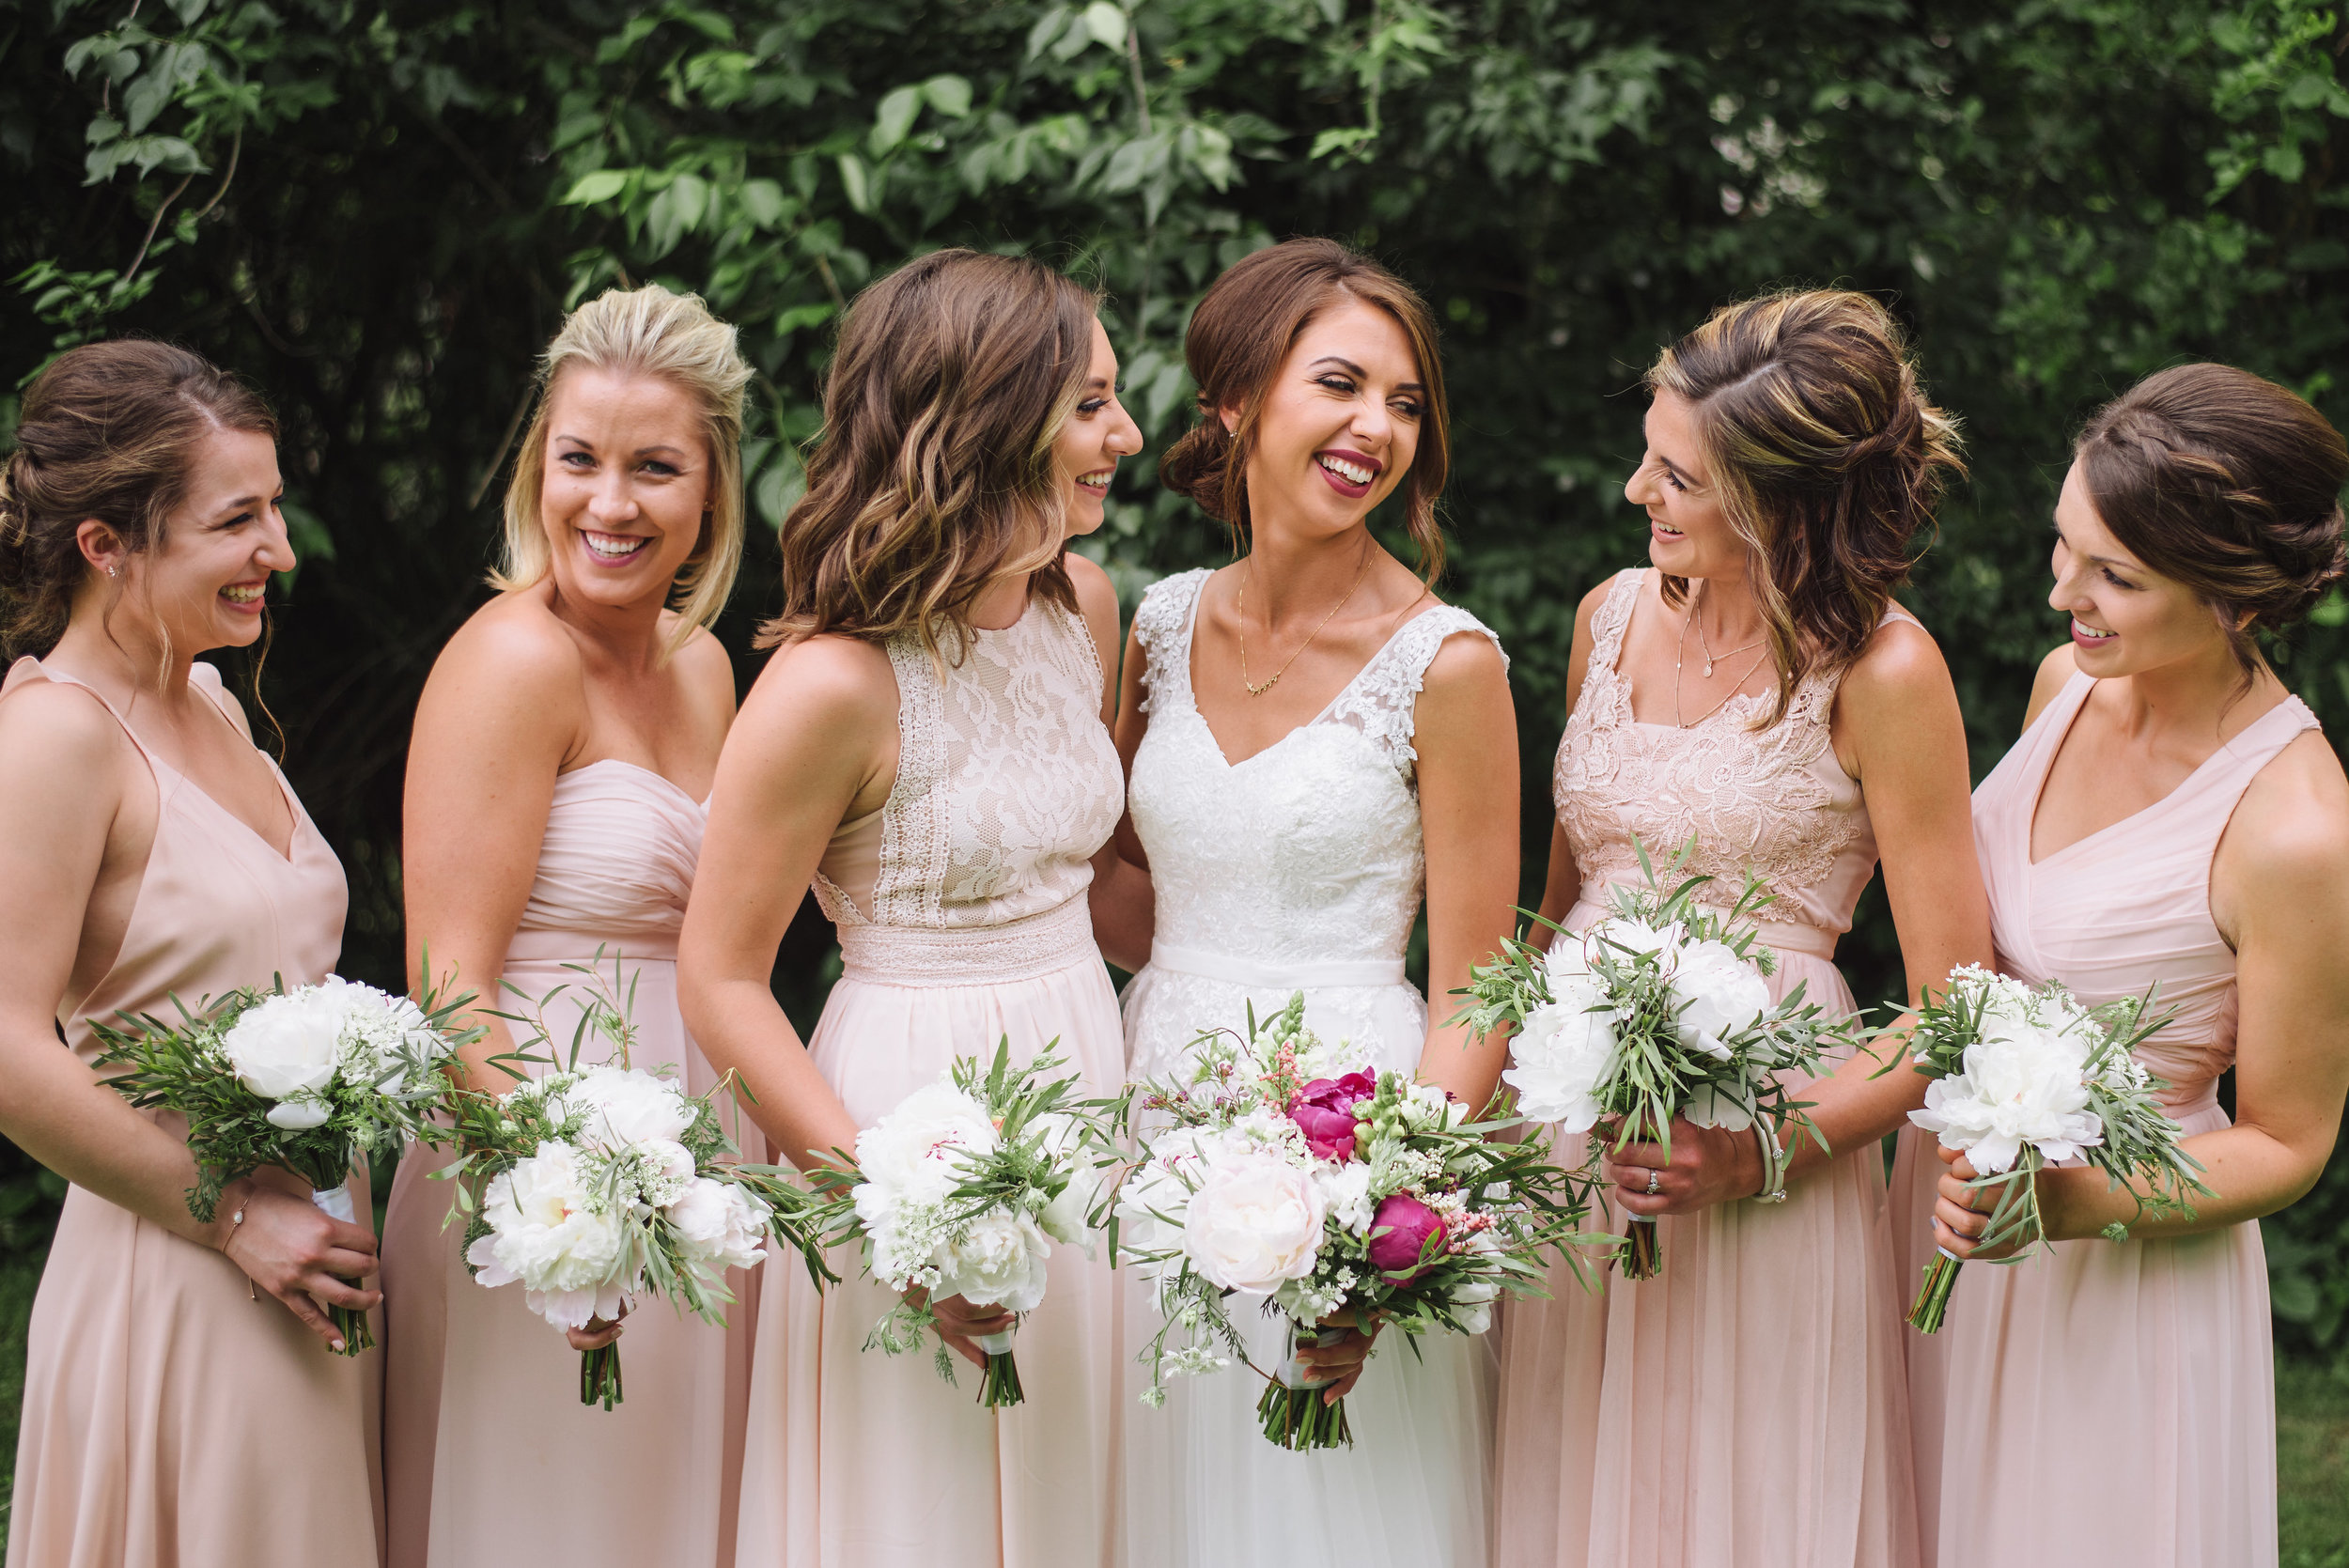 Adding pops of color to the brides bouquet while keeping the bridesmaid's white and green is a great way to let the bride stand out.